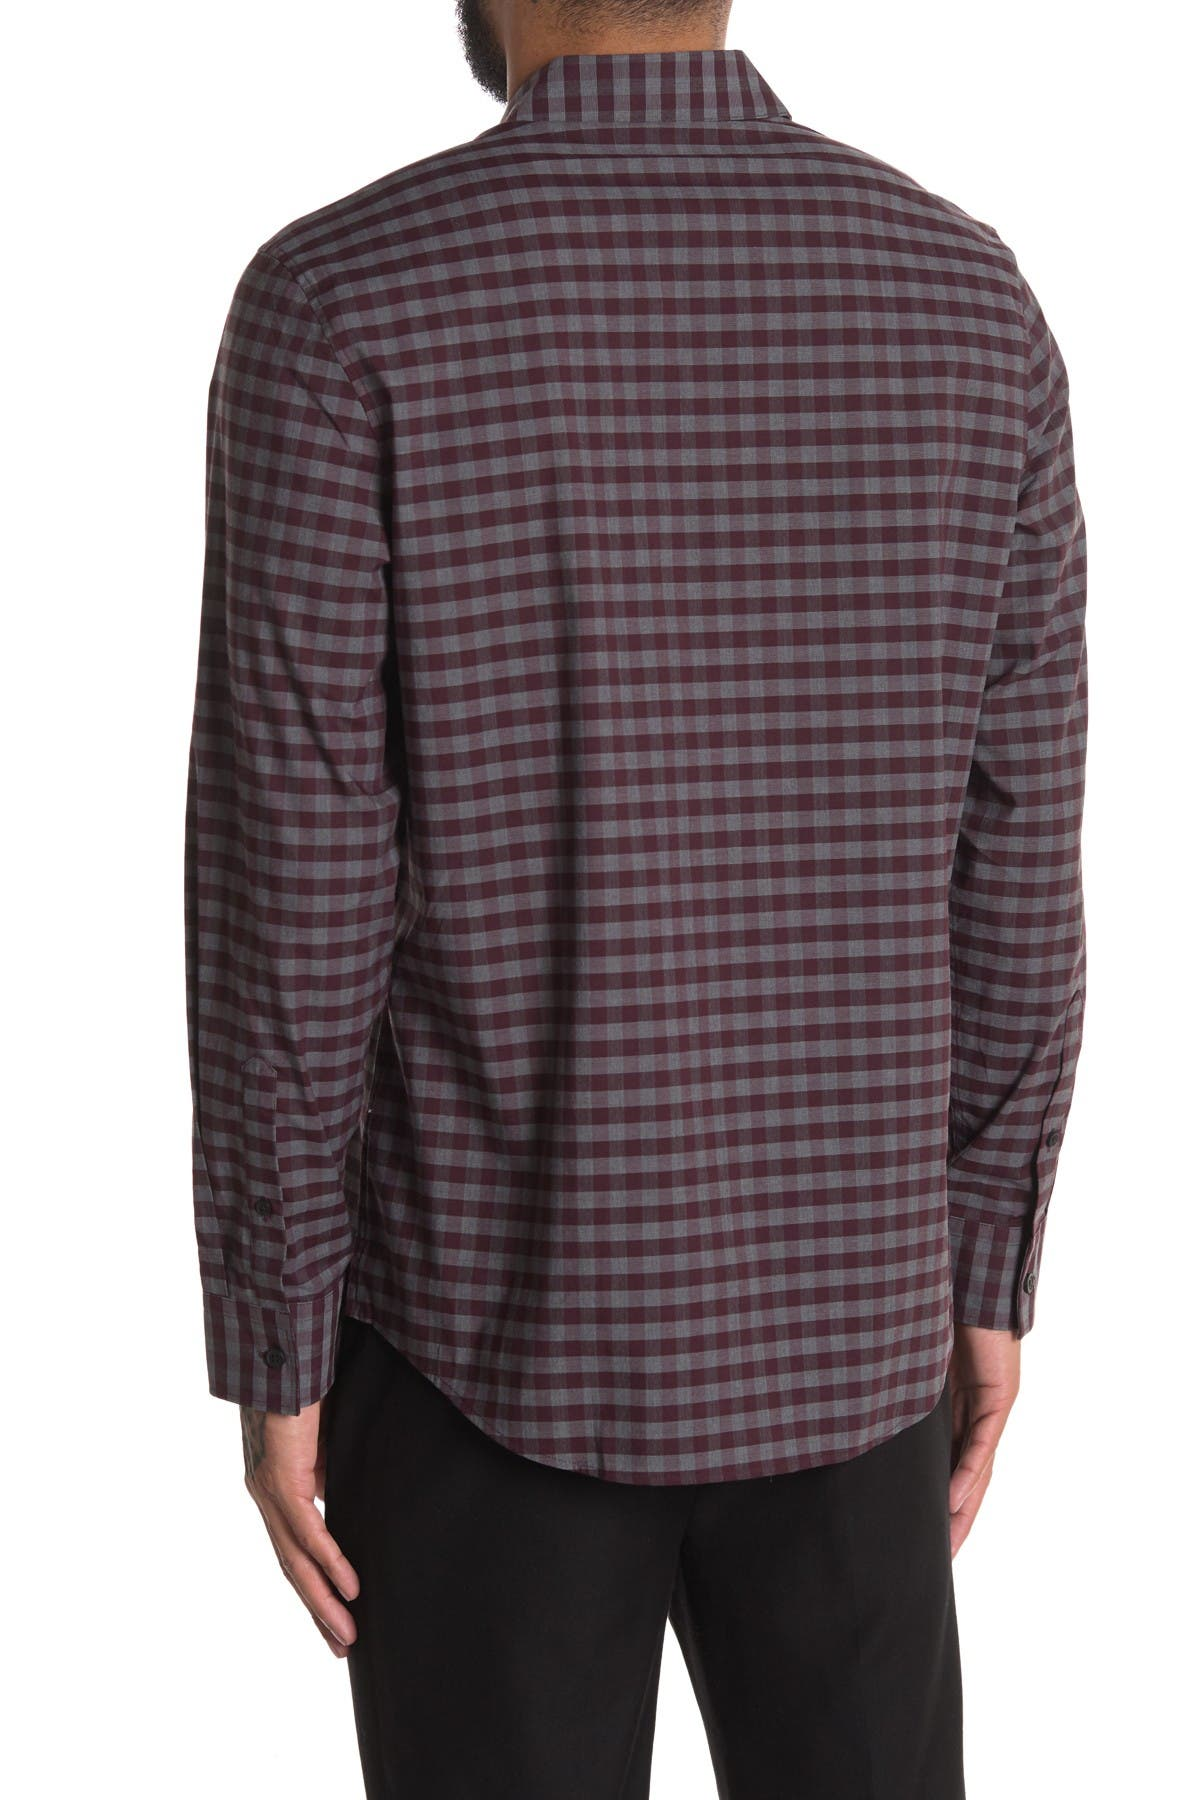 Image of Calvin Klein Stretch Mini Buffalo Plaid Shirt